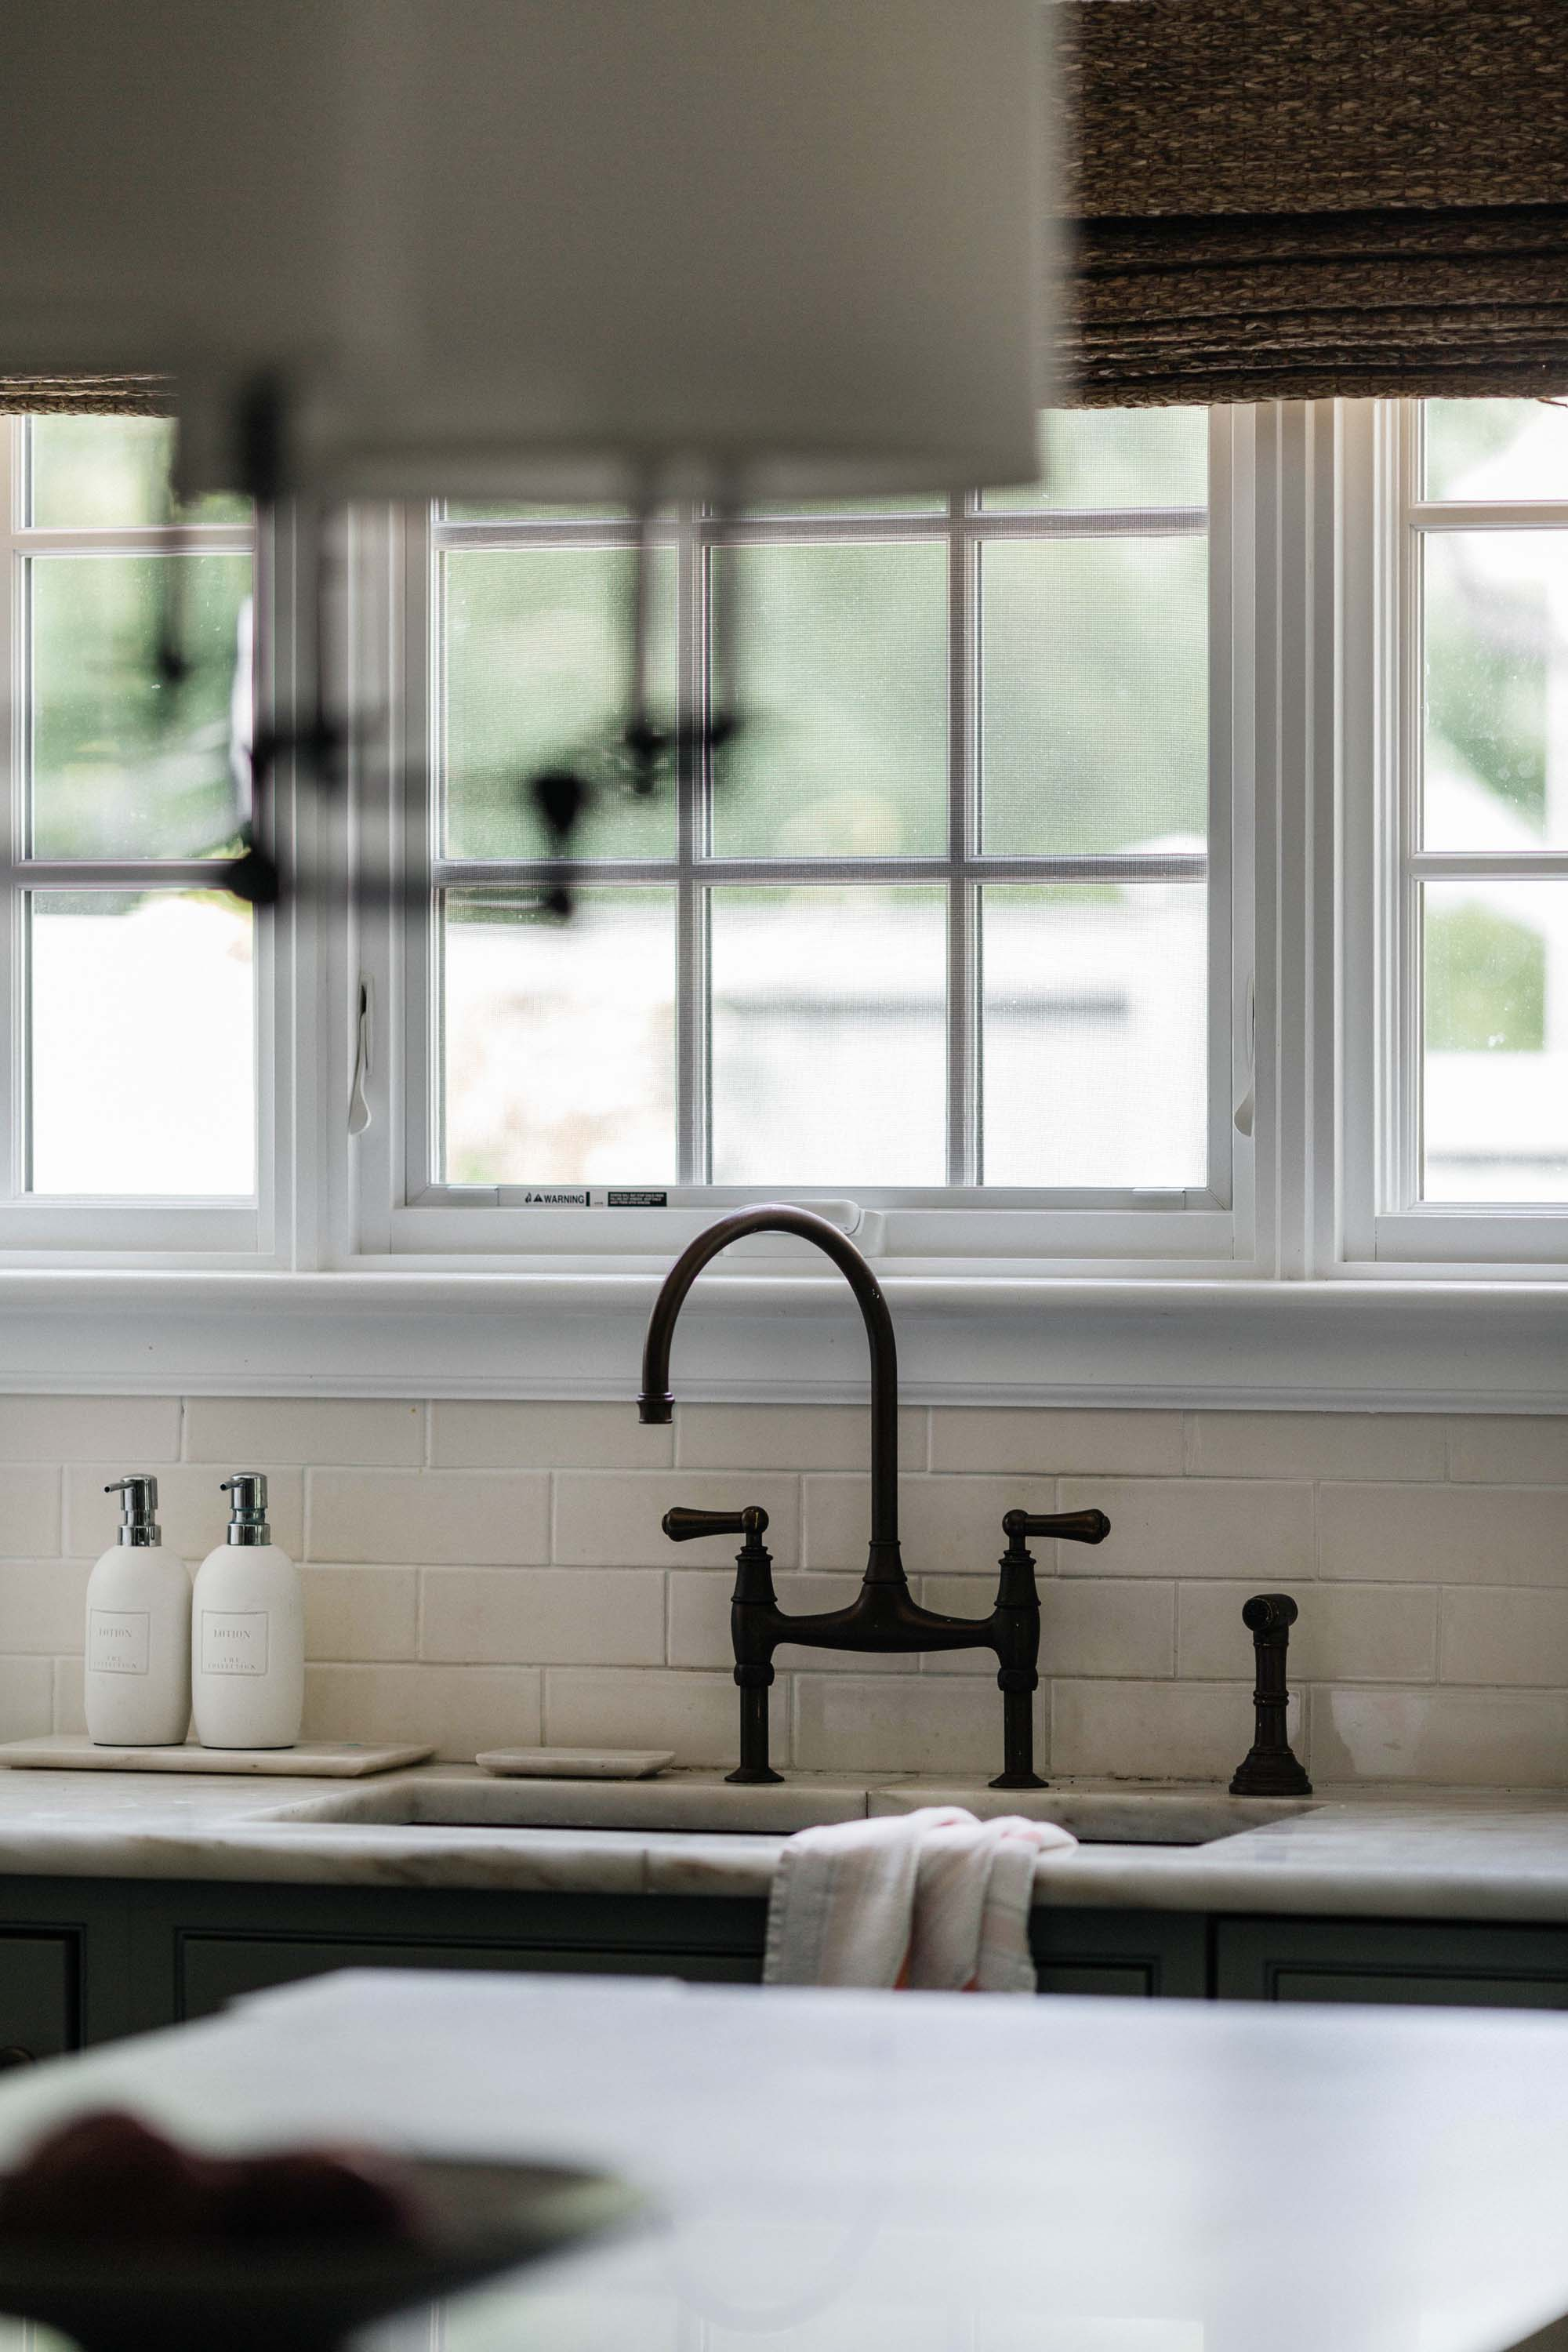 Kitchen interior with vintage style faucet